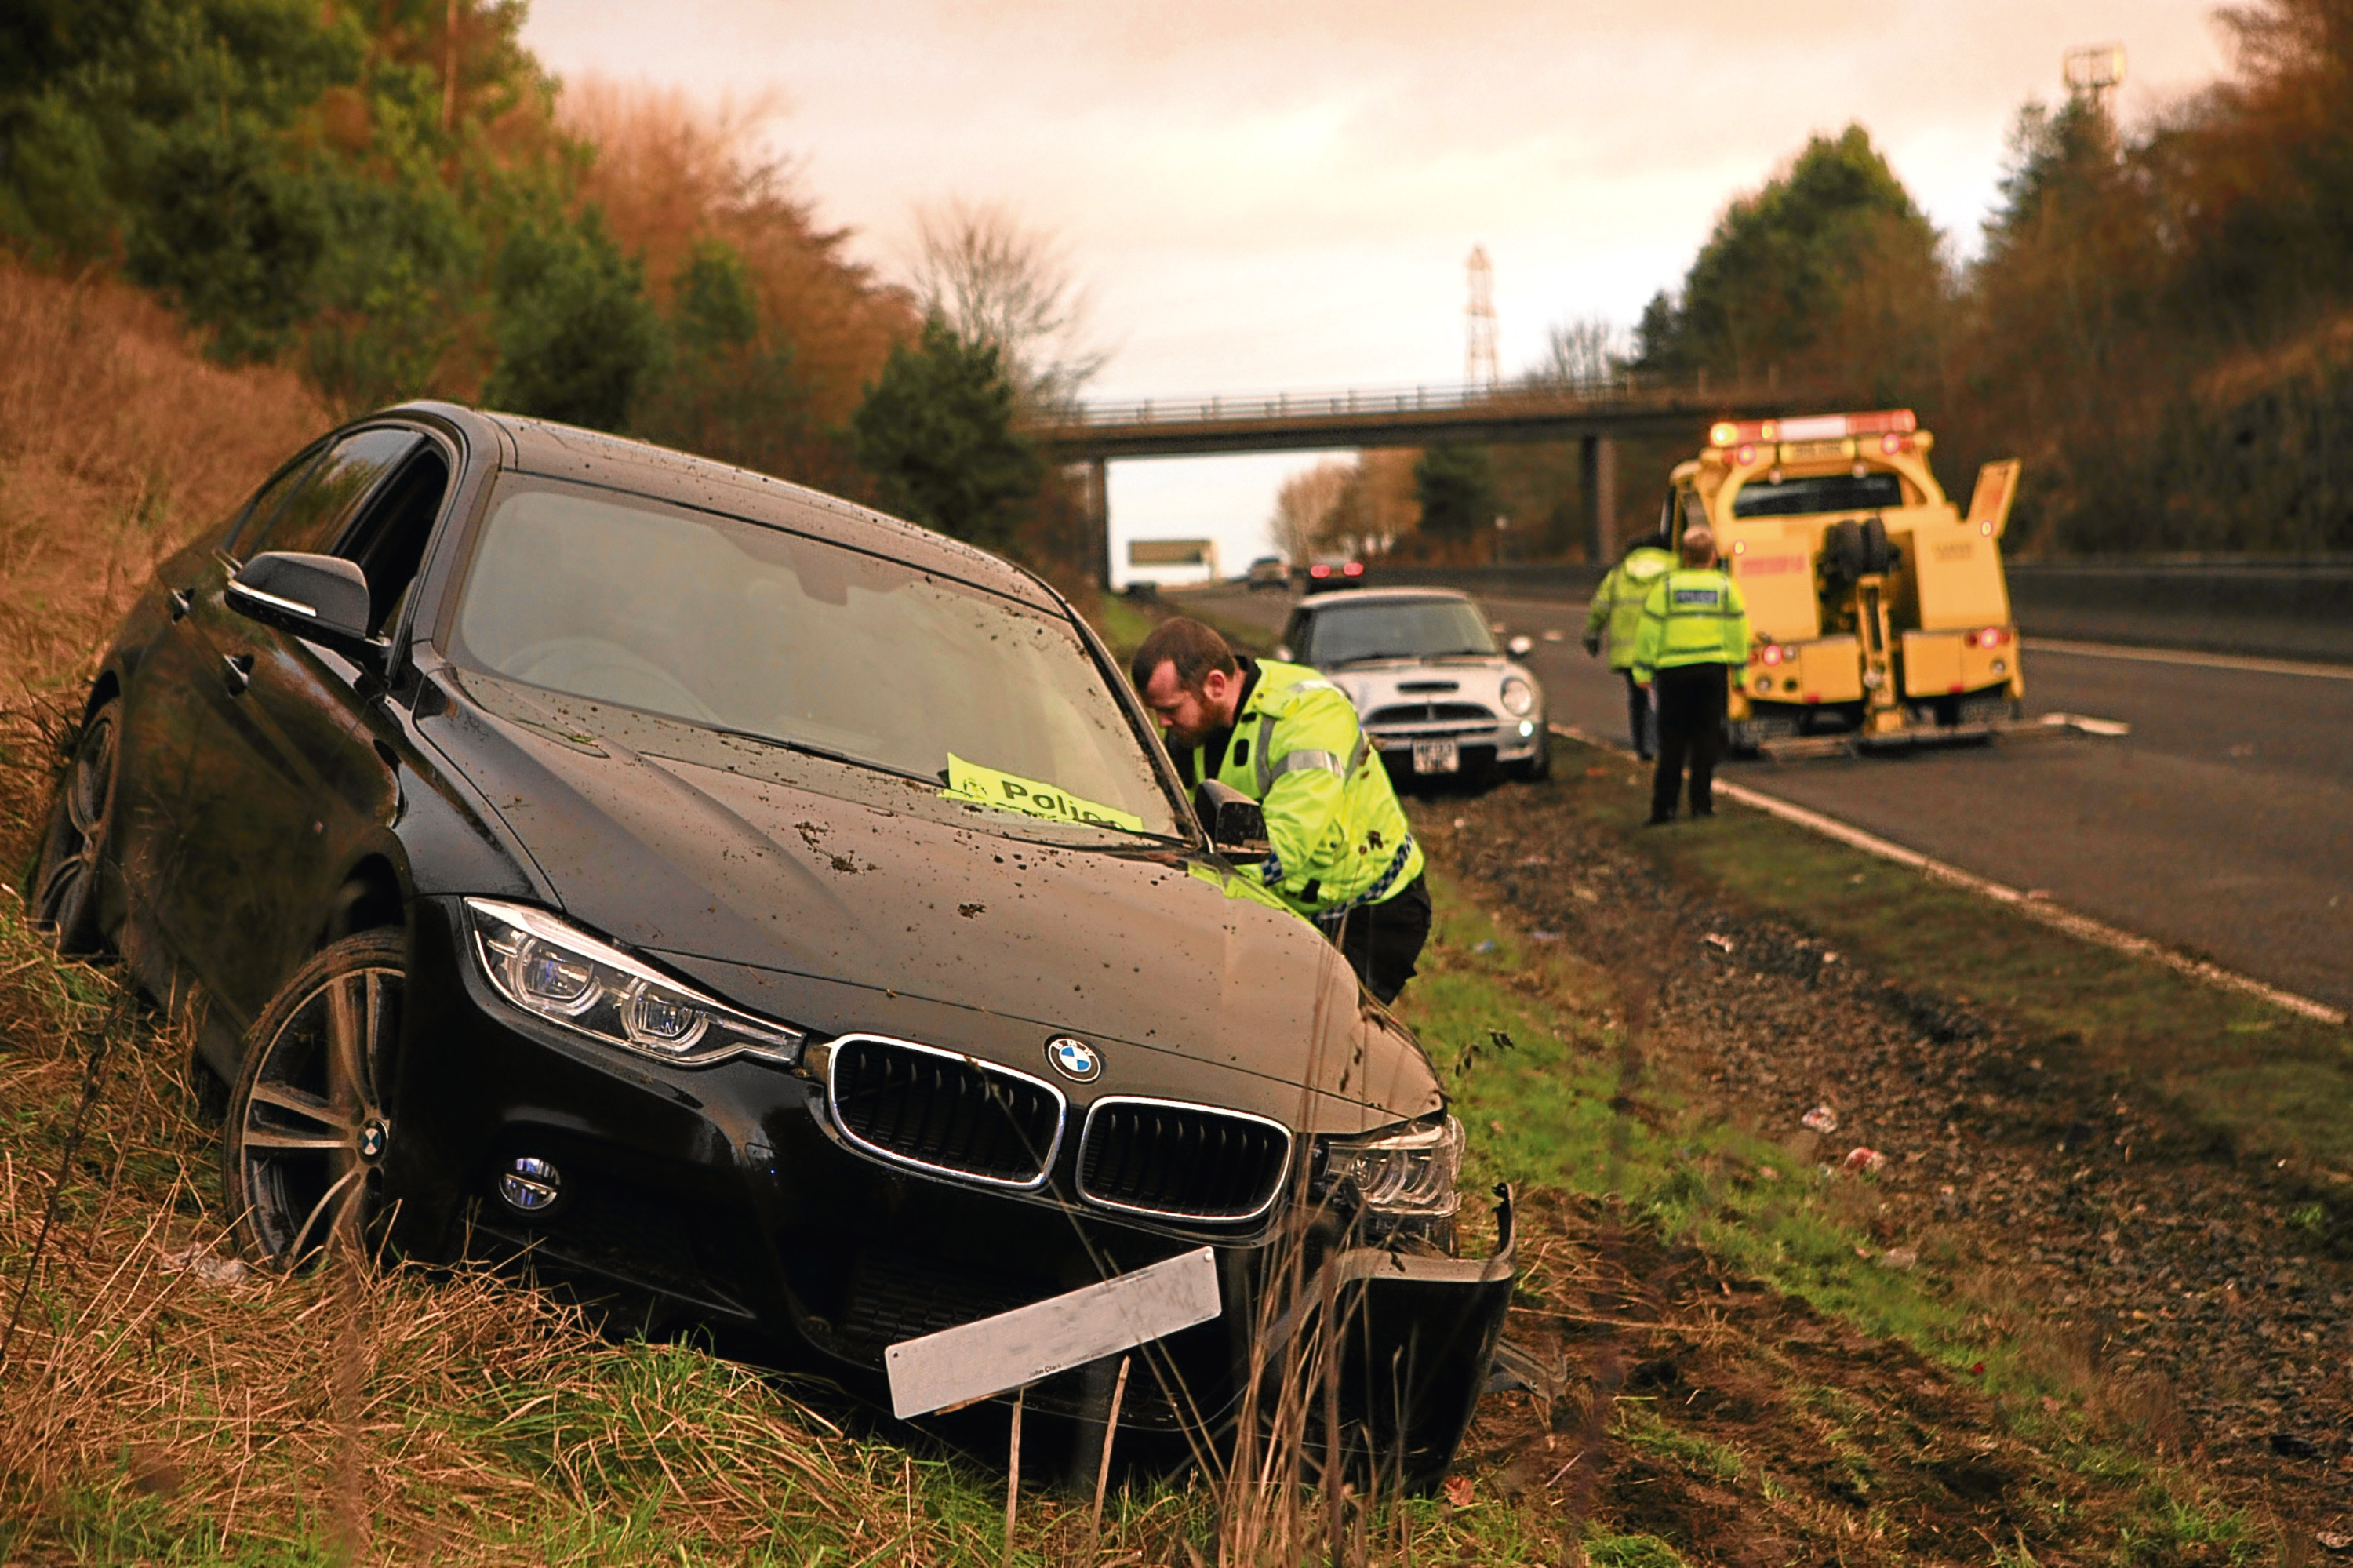 Police attending the scene of the two-car crash today, which left a black BMW on the embankment of the A90.